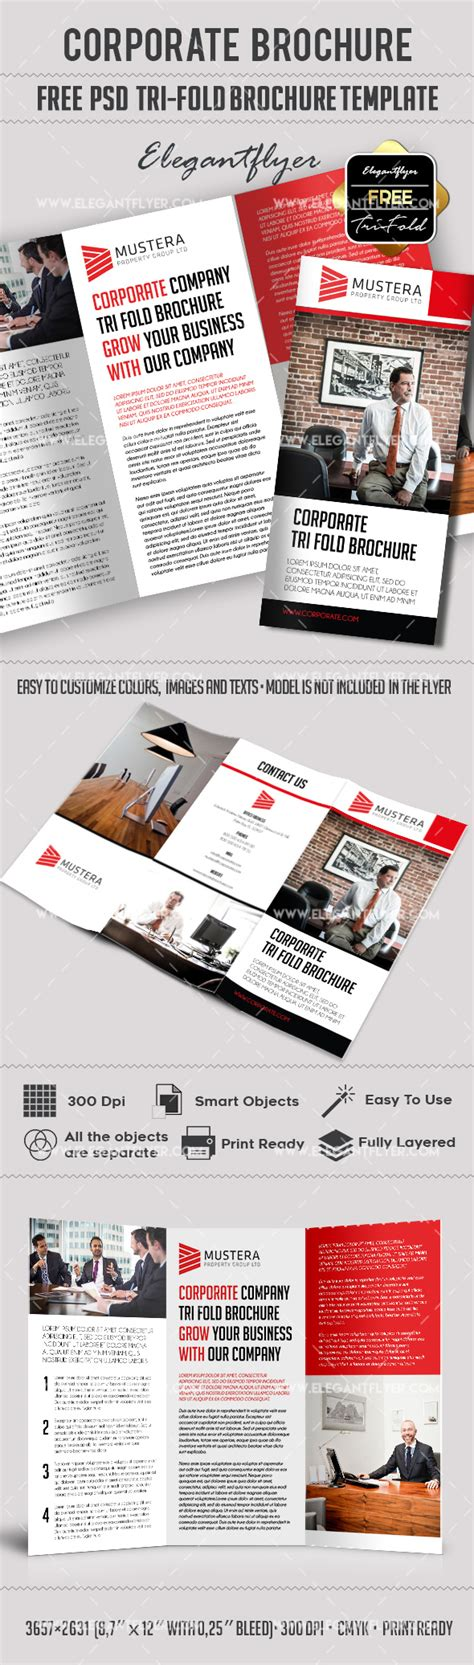 corporate free psd tri fold psd brochure template by